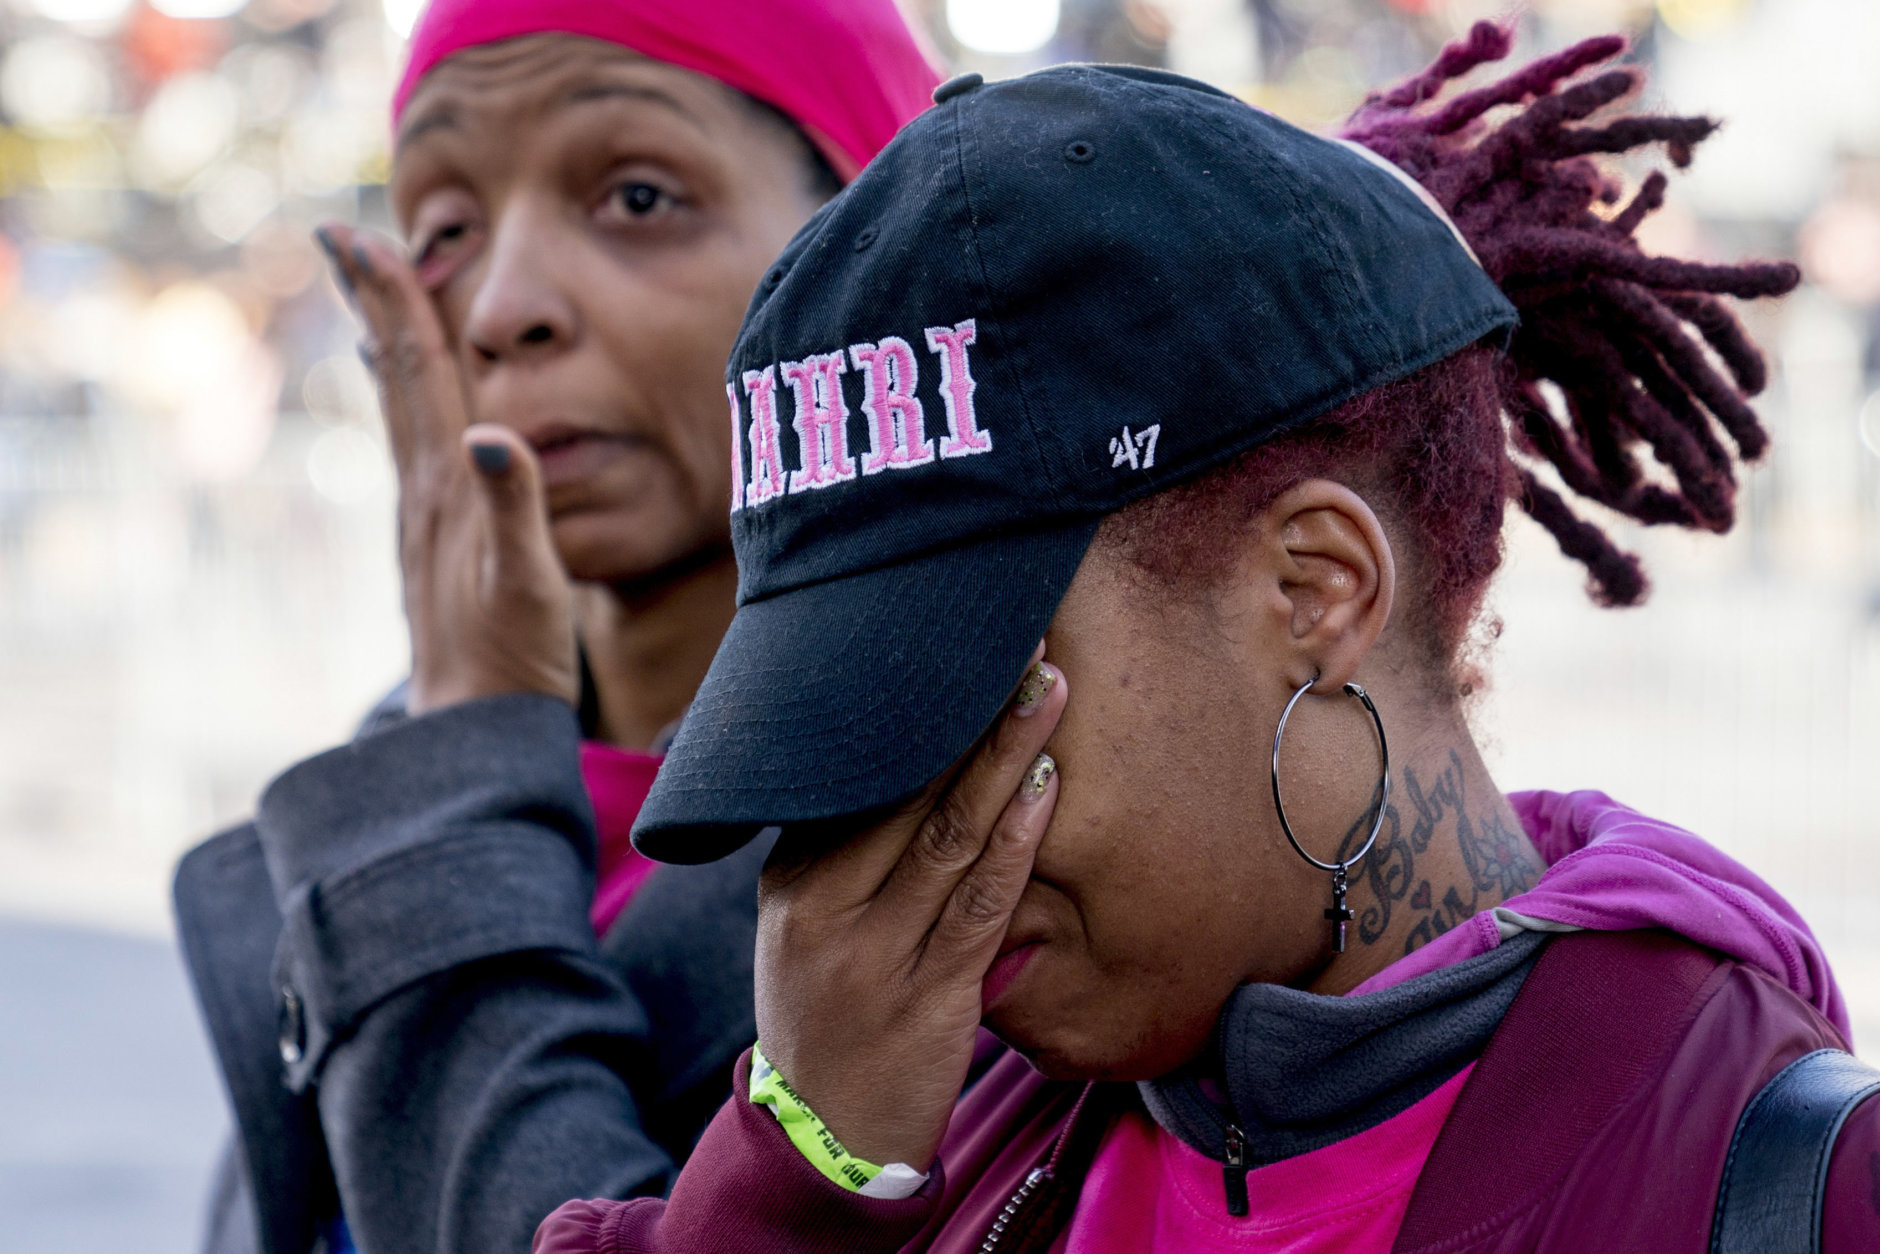 """Nicole Spriggs, left, and April Amarsh, right, cry as they arrive at the """"March for Our Lives"""" rally in support of gun control in Washington, Saturday, March 24, 2018. They were among friends and family attending in memory of college bound Jamahri Sydnor, 17, who was shot to death in August 2017, in Washington. (AP Photo/Andrew Harnik)"""